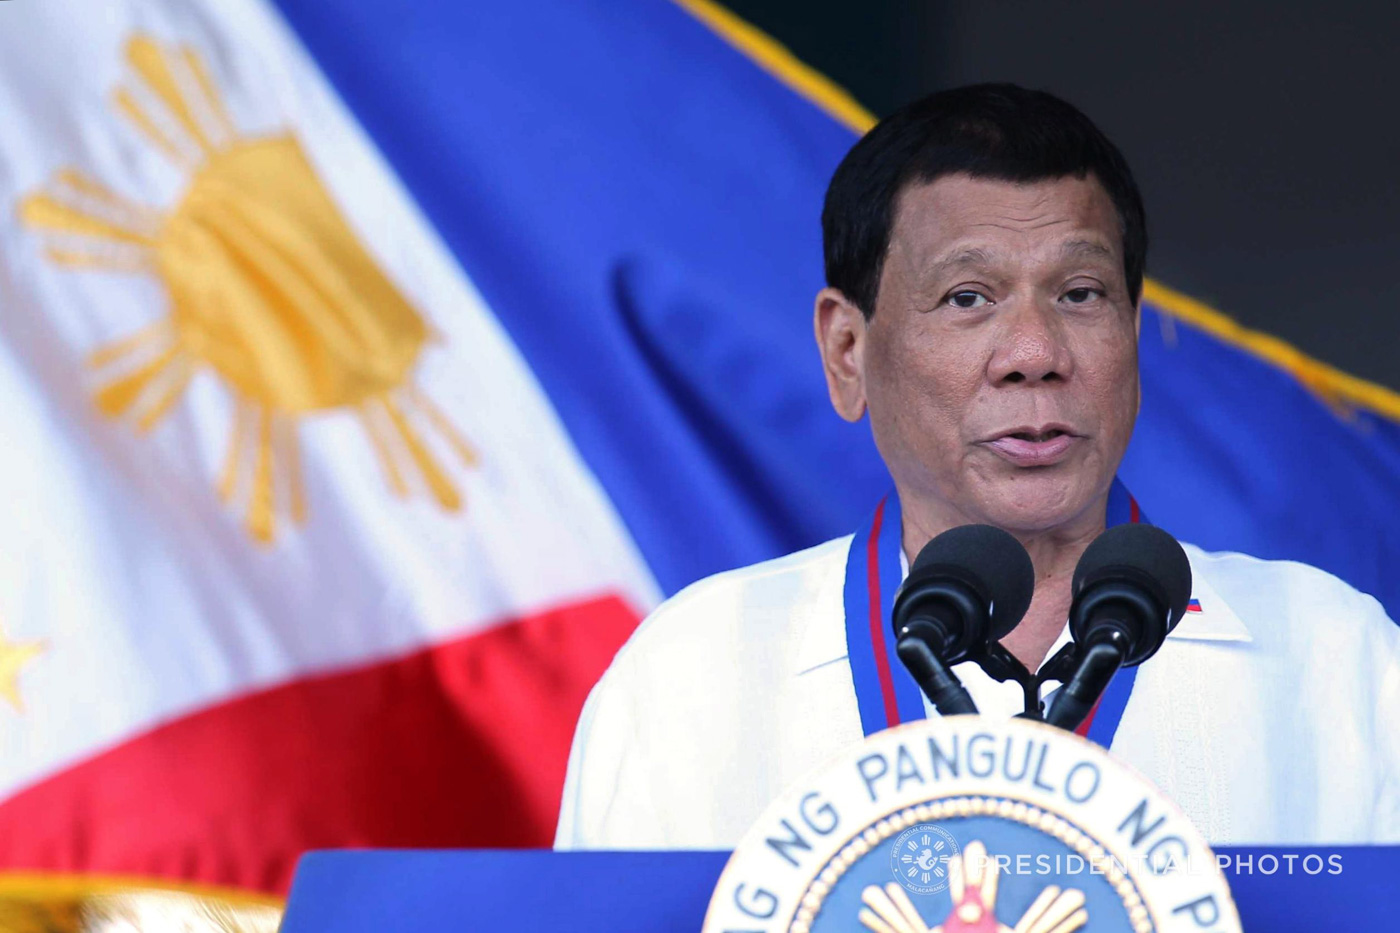 President Duterte Slams The Video Scandal Of His Critic: EU Parliament Calls For End To EJKs In Philippines